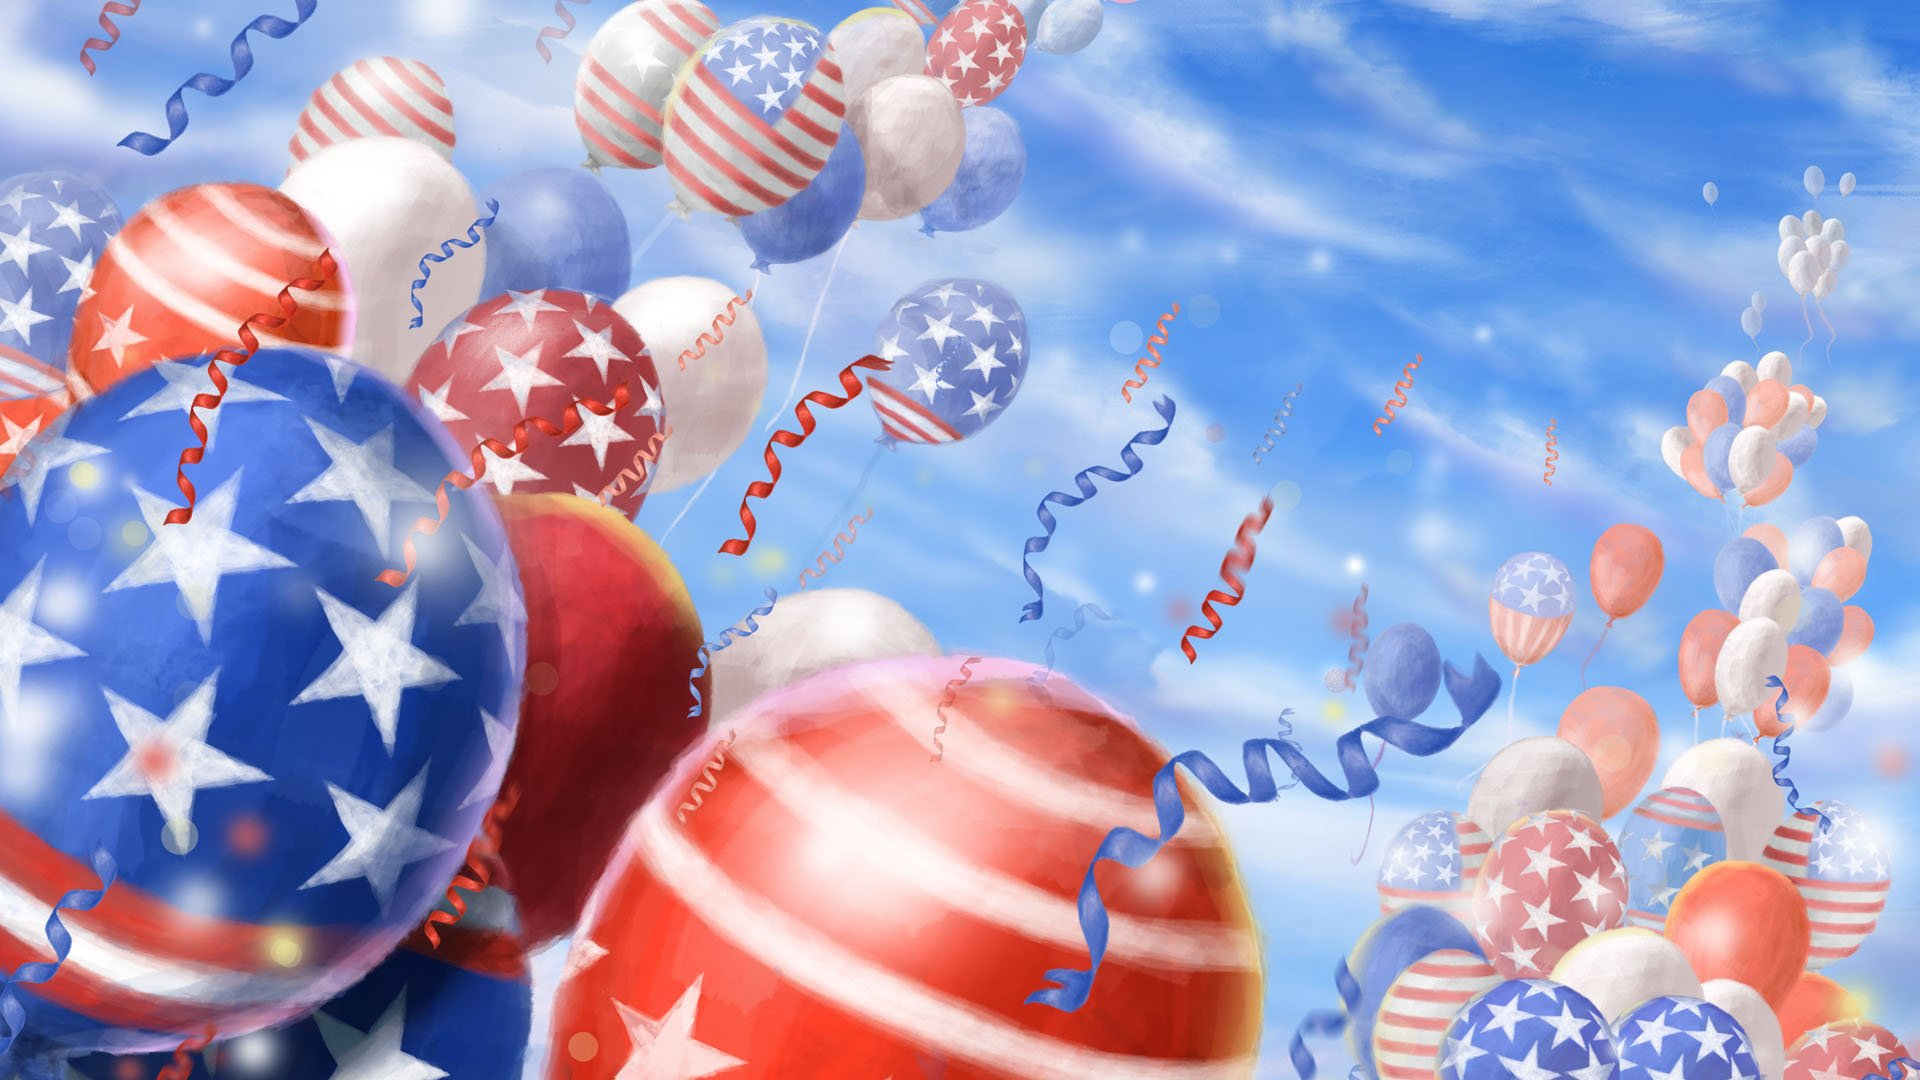 4th Of July Ipad Wallpaper Hd: 4th Of July Full HD Wallpaper And Background